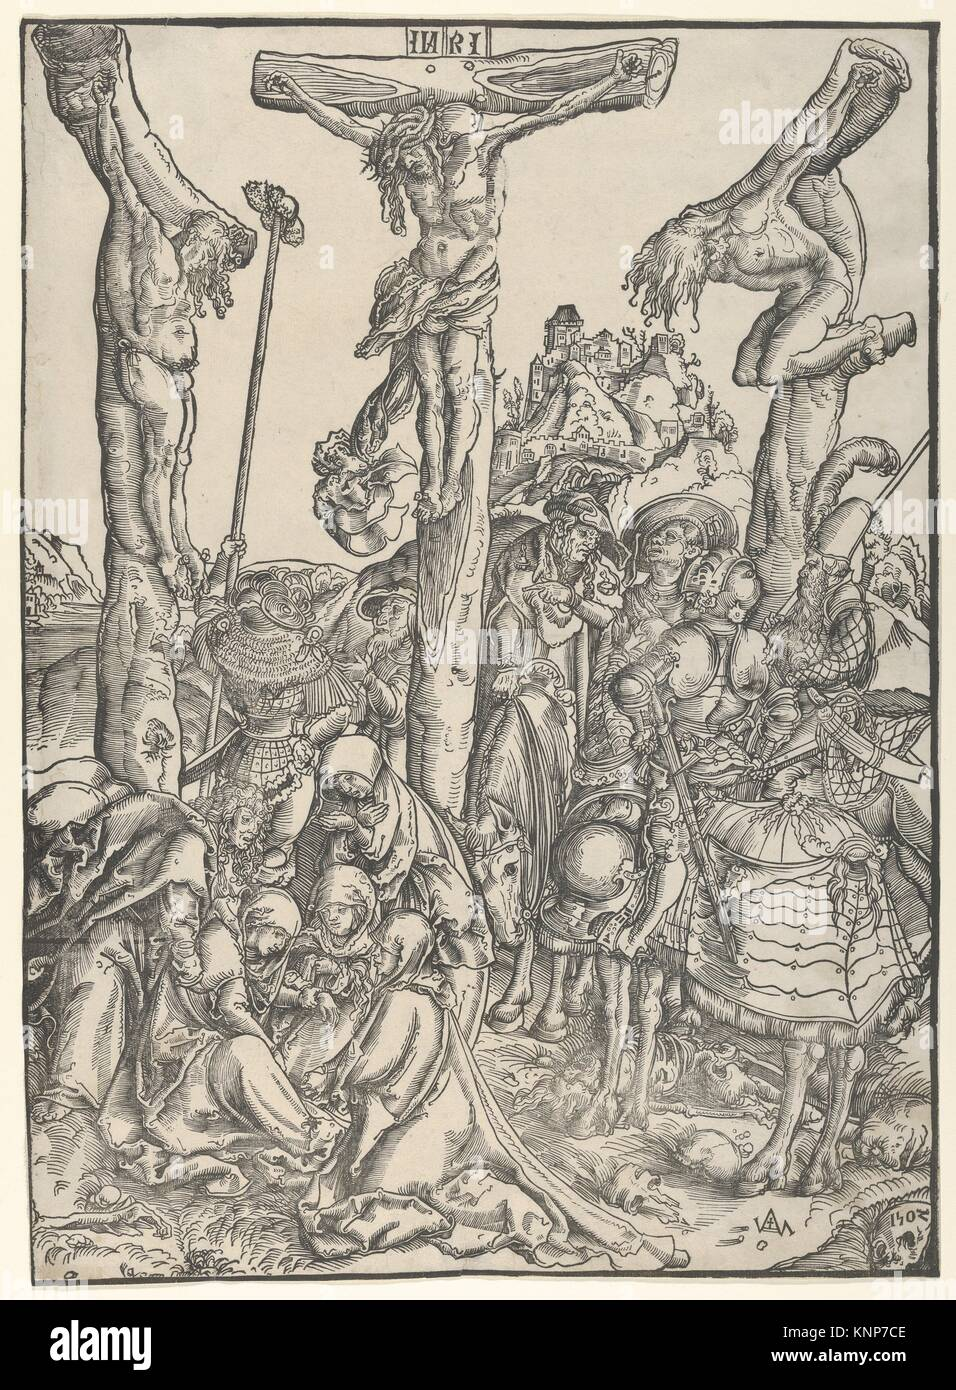 Artist: Lucas Cranach the Elder (German, Kronach 1472-1553 Weimar); Date:  1502; Medium: Woodcut; Dimensions: sheet: 16-1/8 x 11-1/2